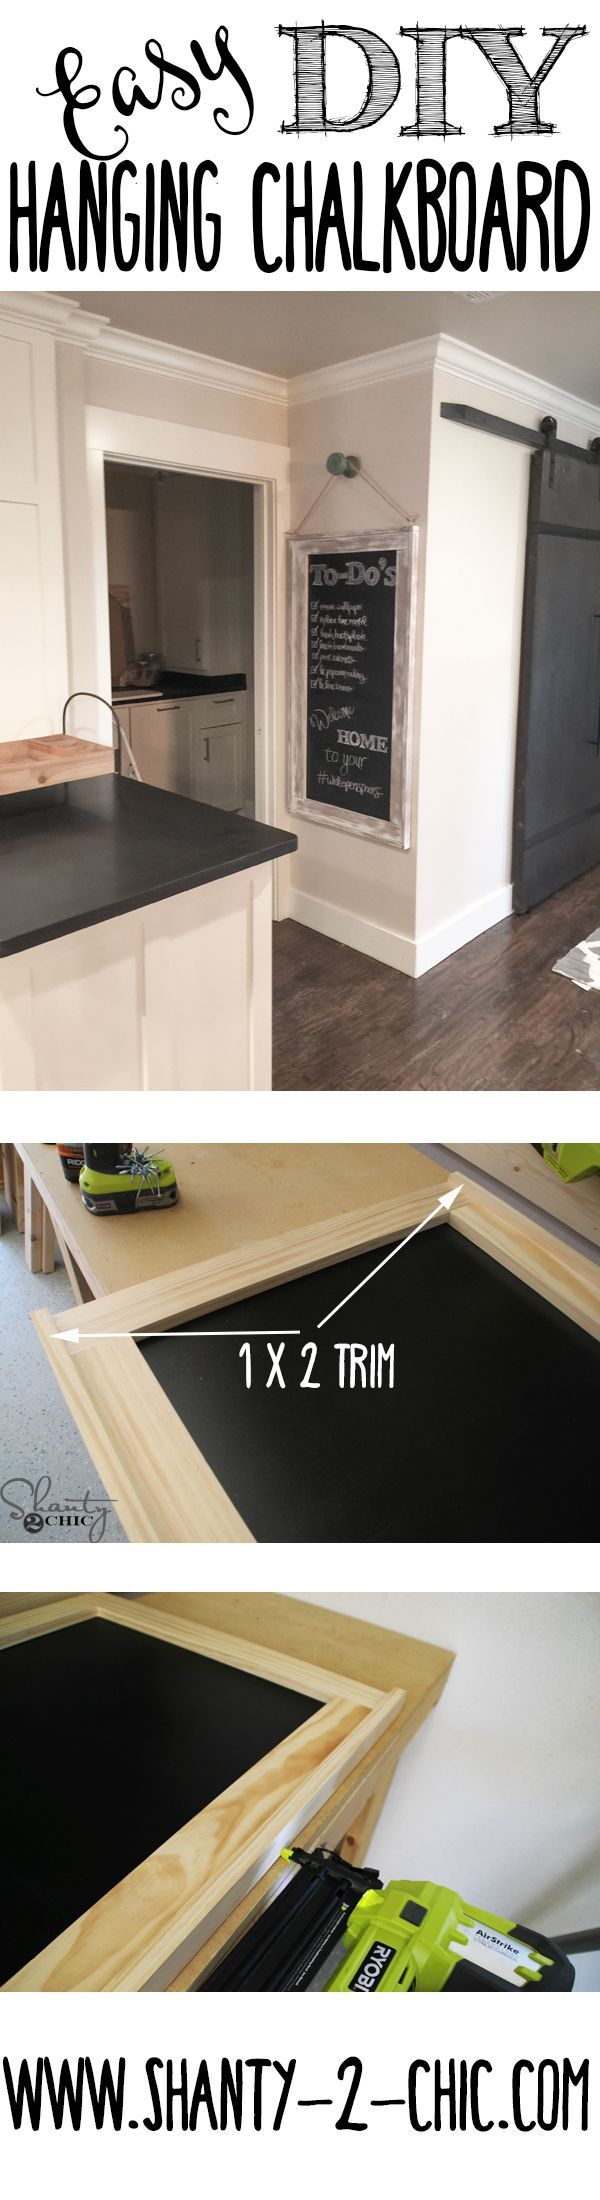 #woodworkingplans #woodworking #woodworkingprojects The perfect project for a beginning woodworker! Easy and inexpensive DIY Hanging Chalkboard! Get the free plans and step-by-step tutorial at www.shanty-2-chic...